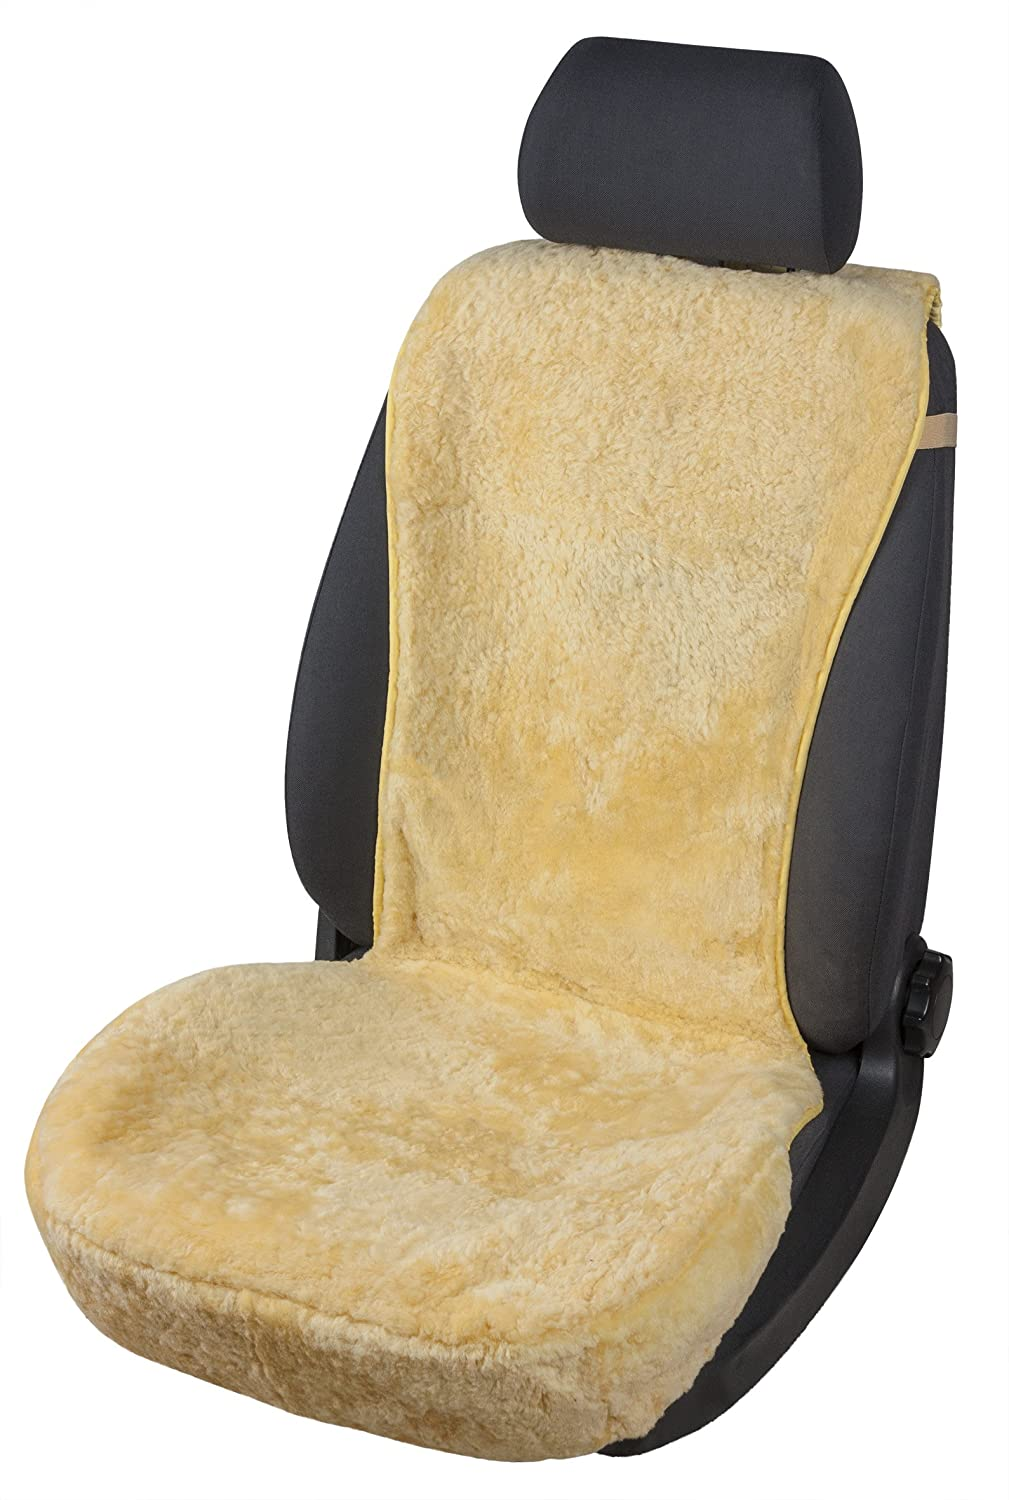 Walser 20102 Car Seat Cover, Beige Walser GmbH